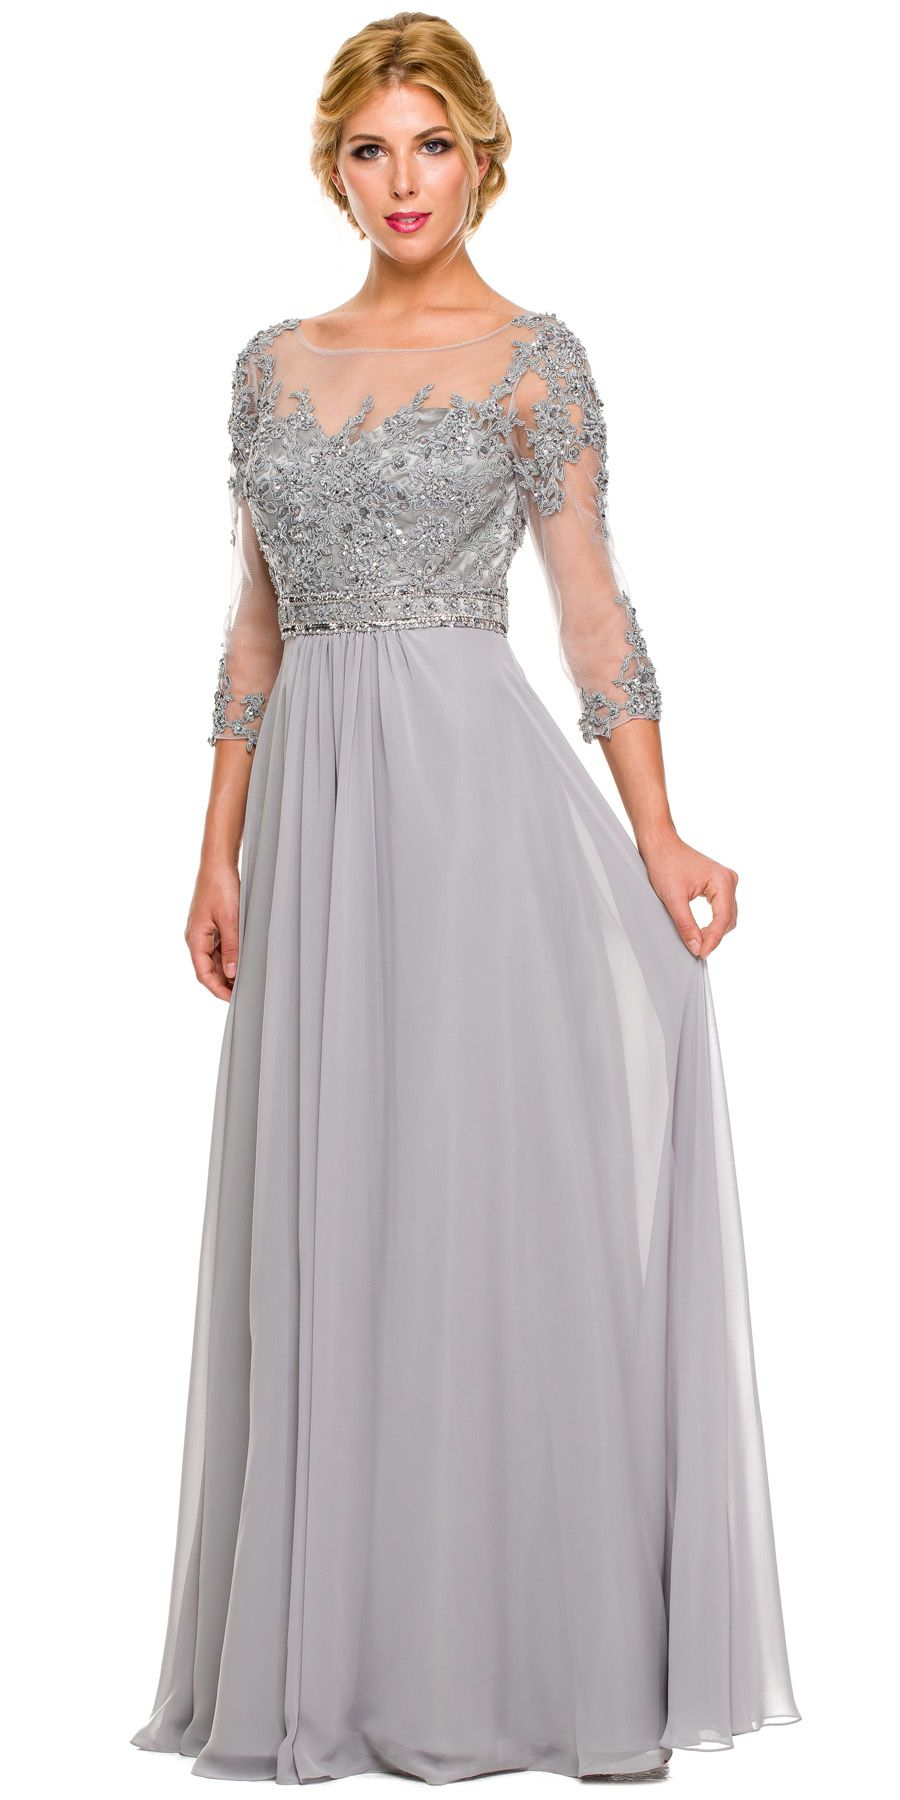 3/4 Length Sleeve Silver Formal Gown Illusion Neck